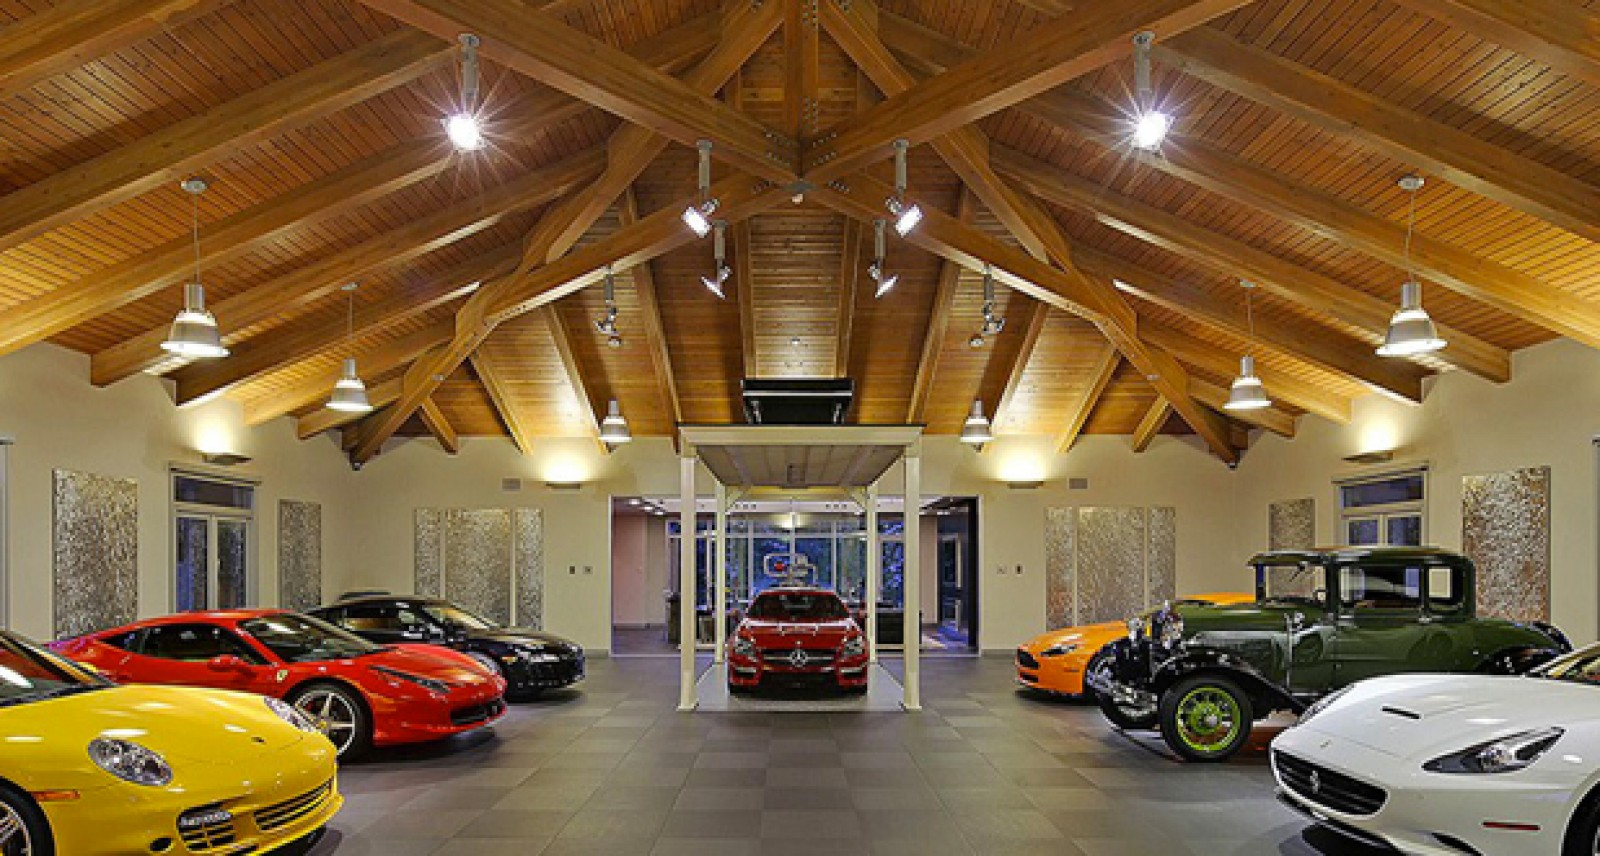 Daily 5 The Exotic Car Garage Of Your Dreams Plus The